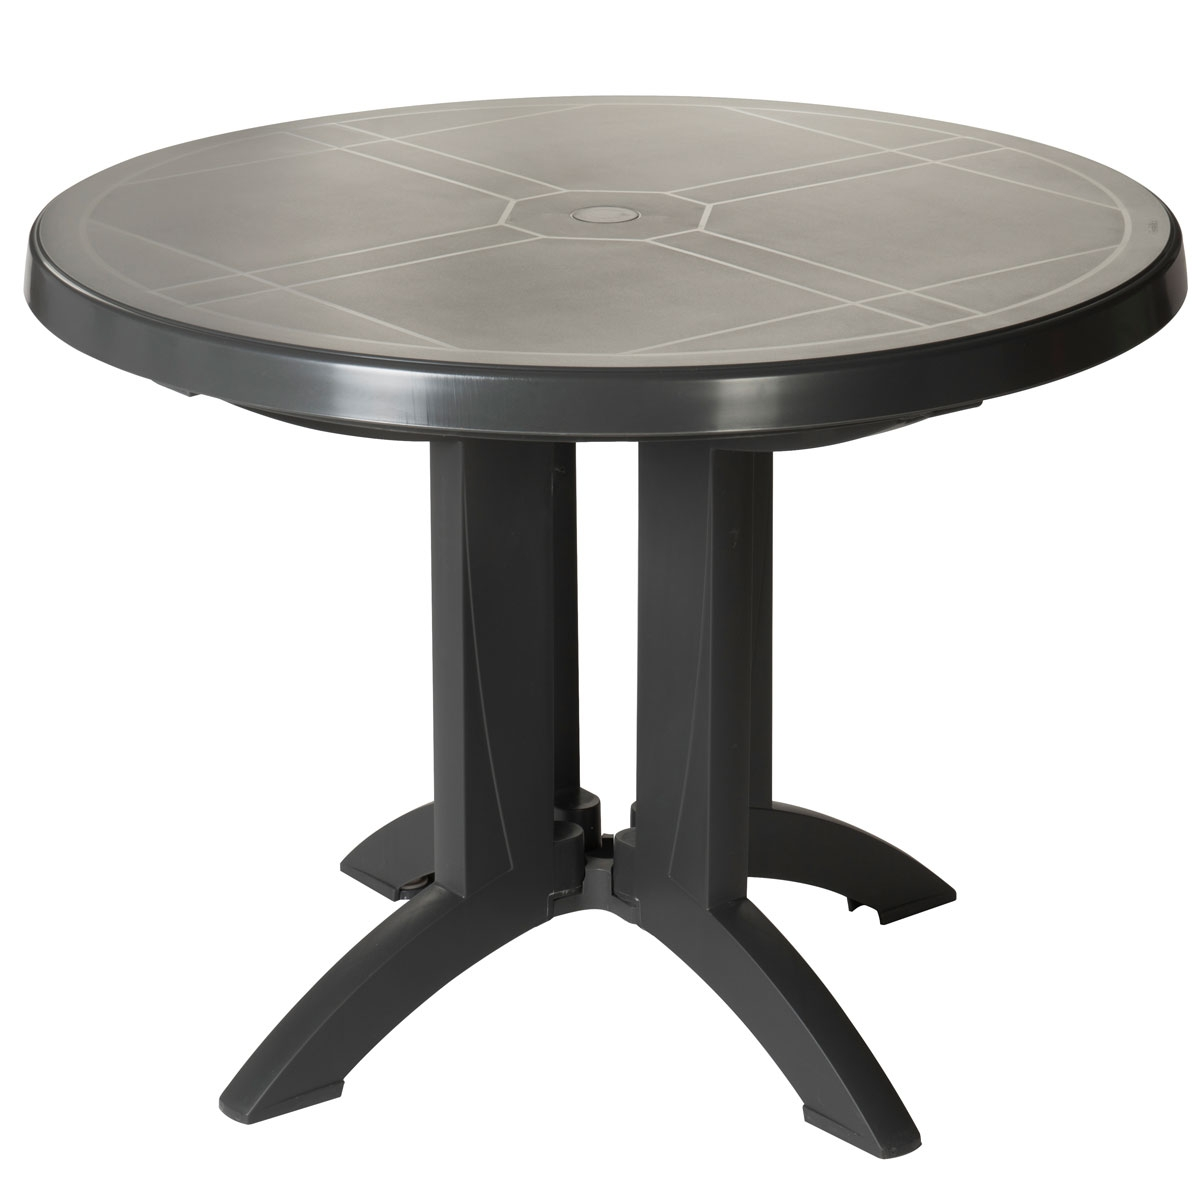 Table De Jardin Design Grosfillex Sigma ~ Arad Related Keywords & Suggestions  Arad Long Tail Keywords